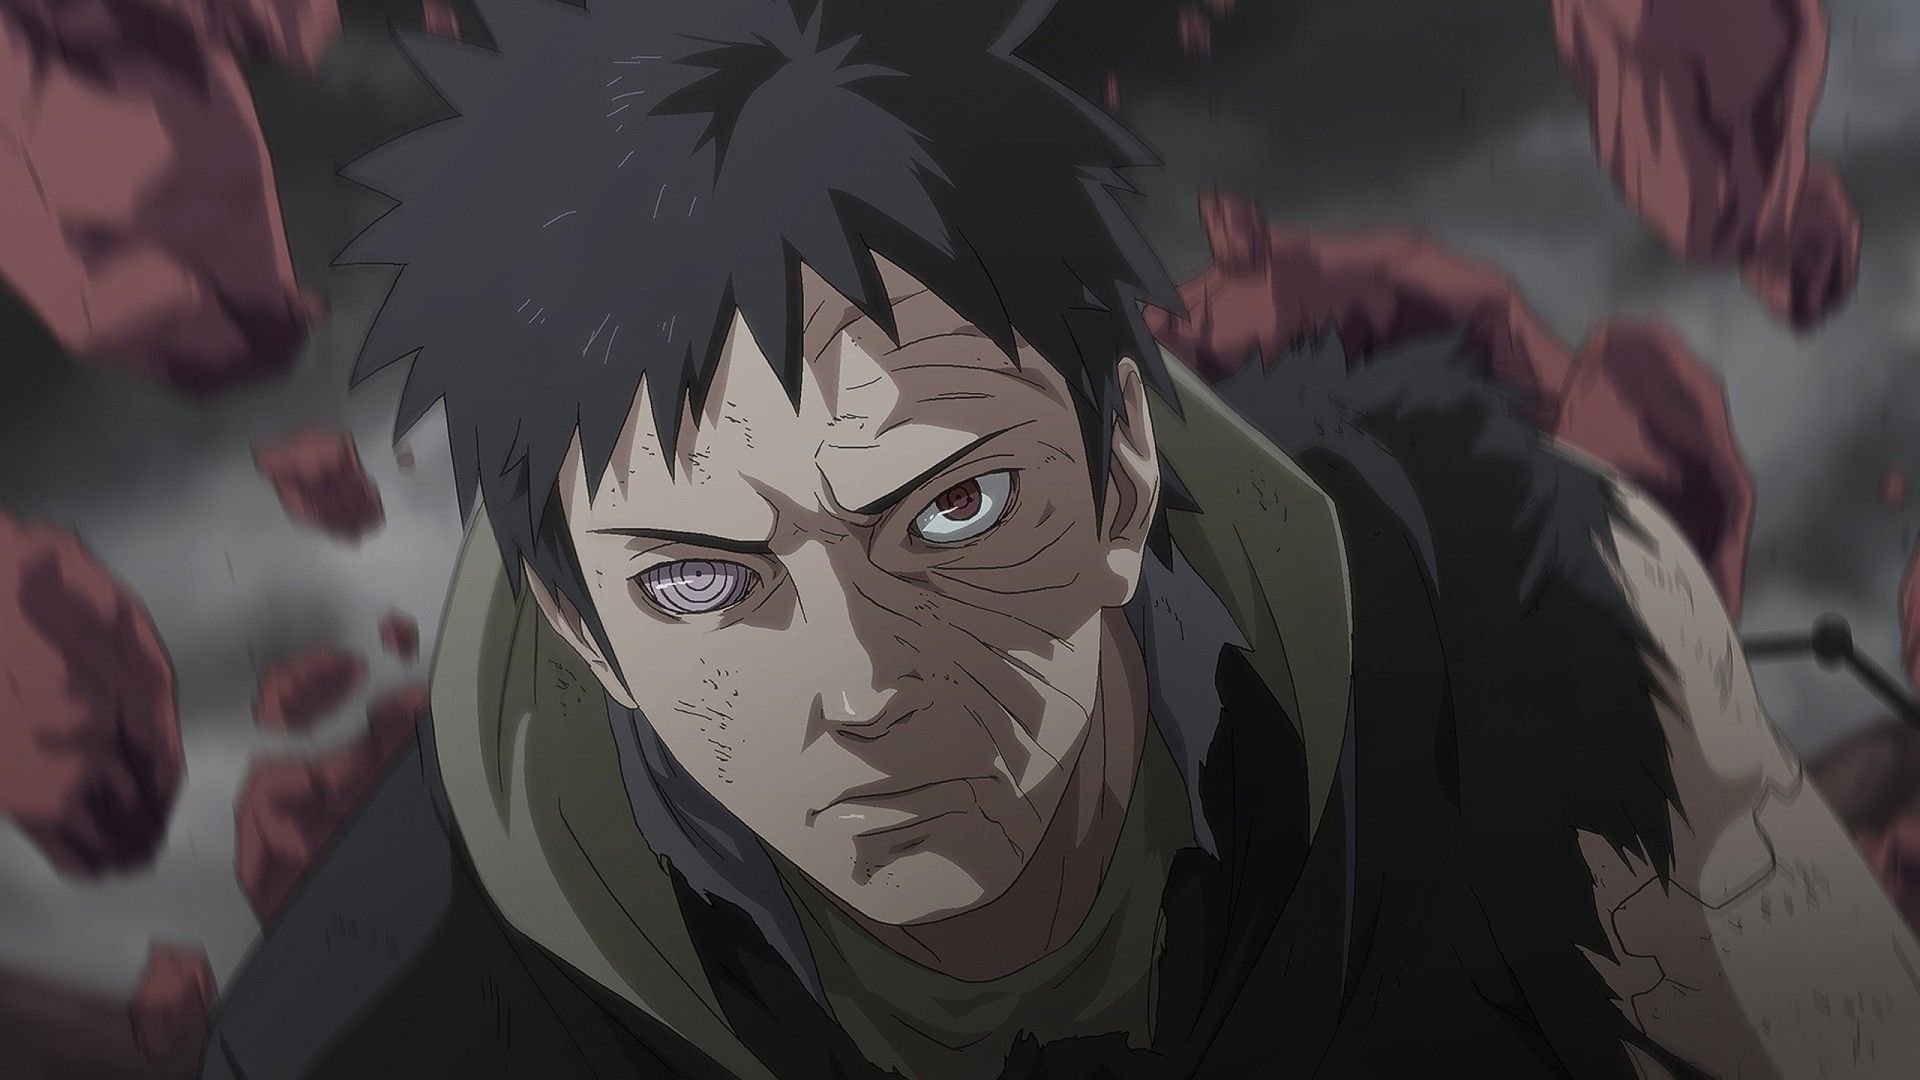 Obito Uchiha Hd Wallpapers Top Free Obito Uchiha Hd Backgrounds Wallpaperaccess